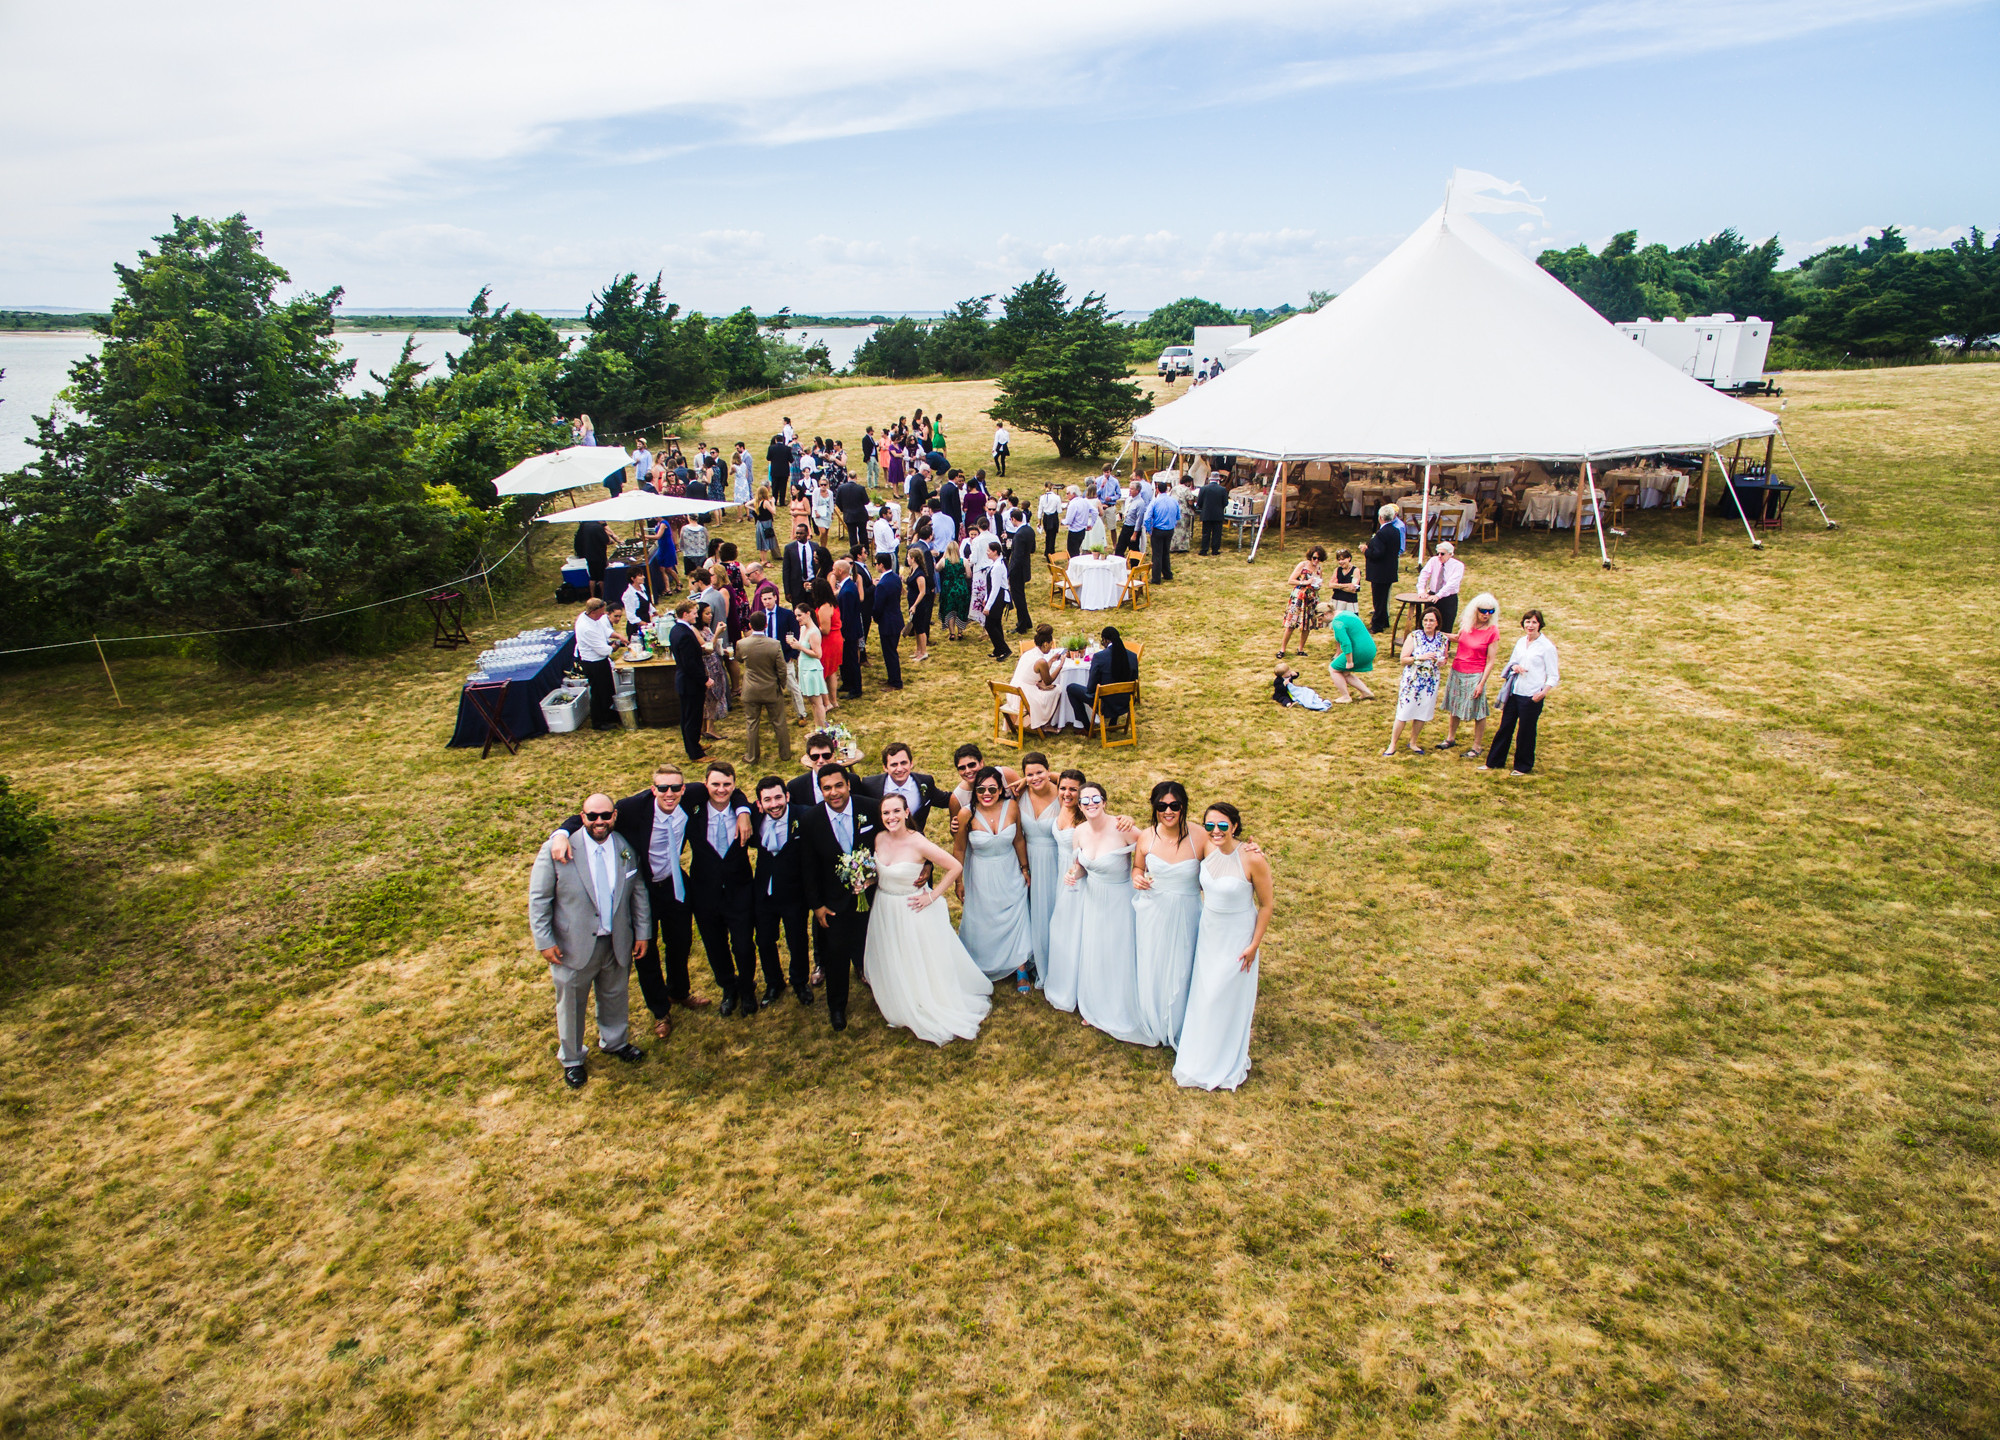 A private wedding celebration on Martha's Vineyard drone photo by David Welch Photography